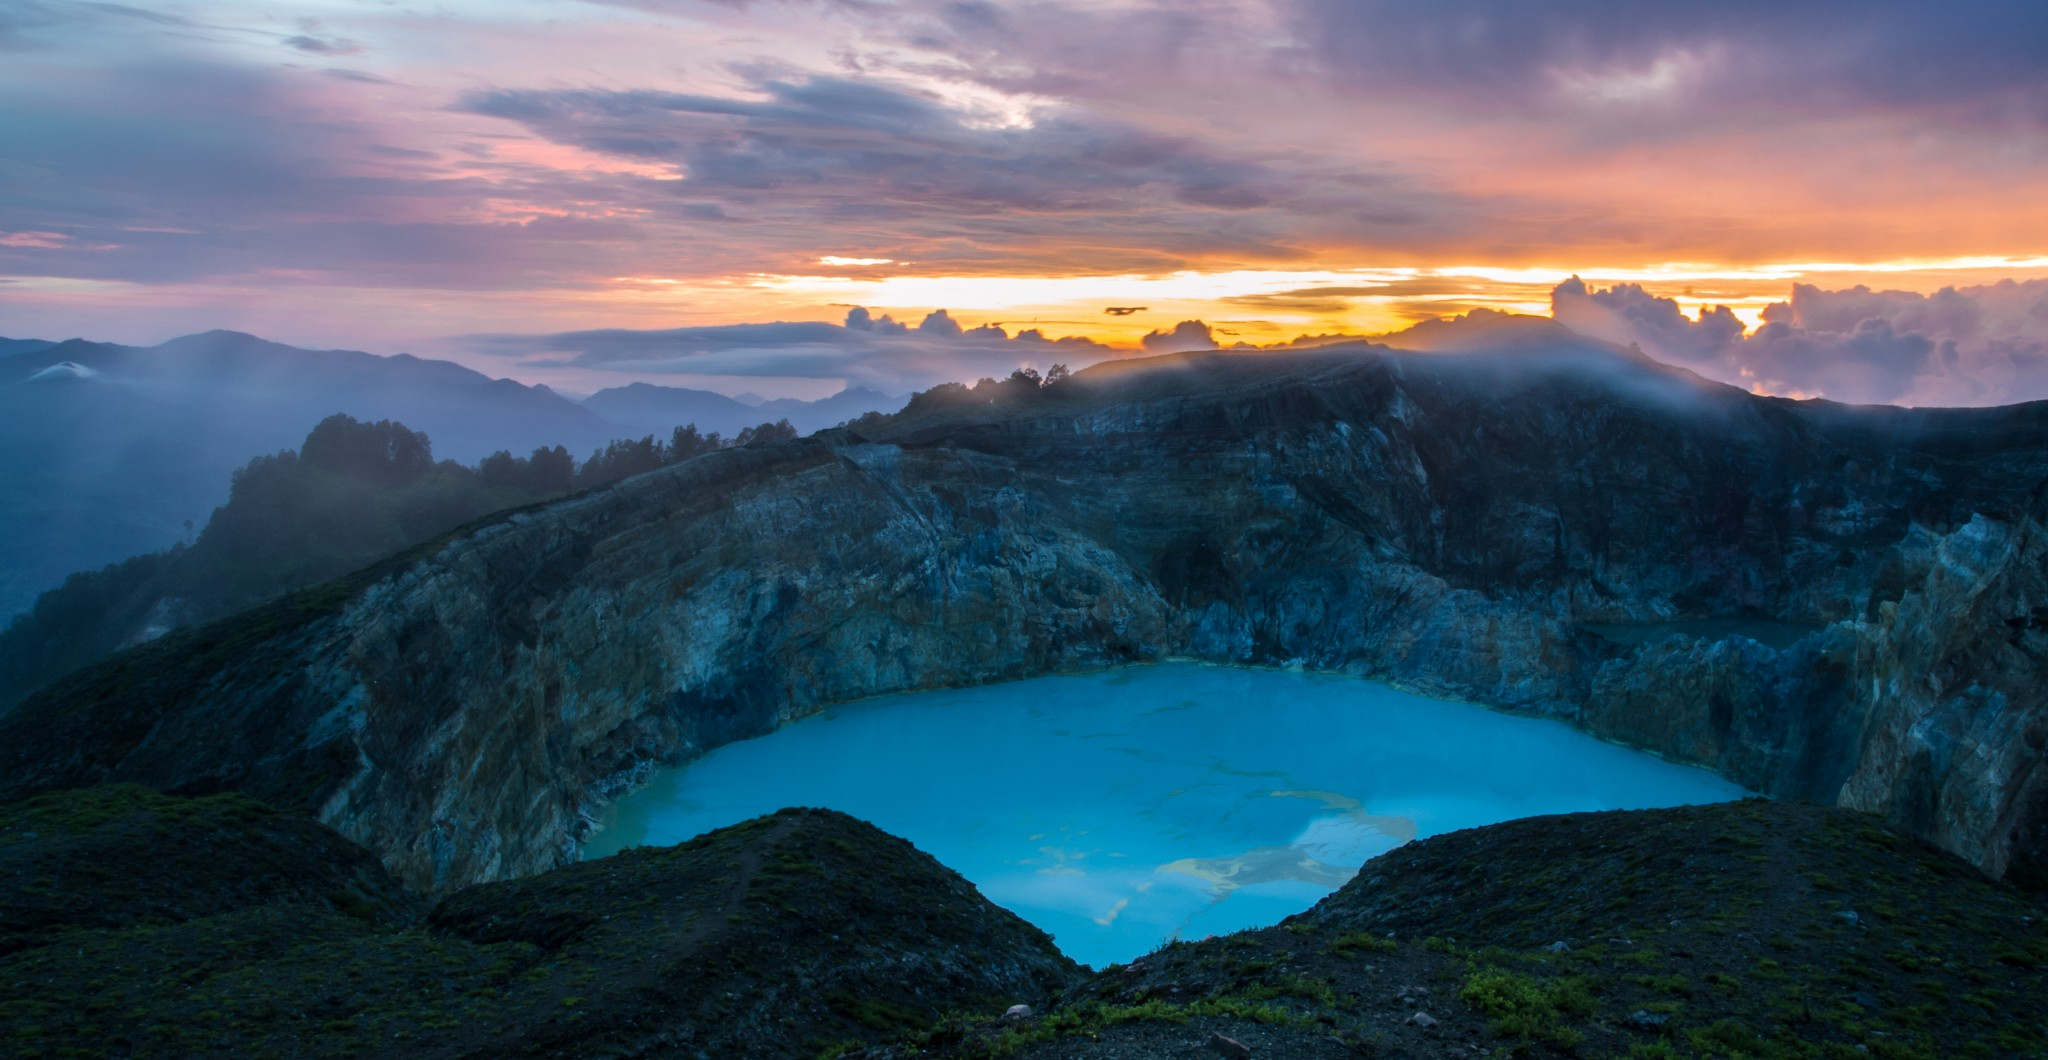 At the top of the Indonesian volcano Kelimutu situated three lakes, each lake periodically changes its color because of volcanic gases - Serious Facts